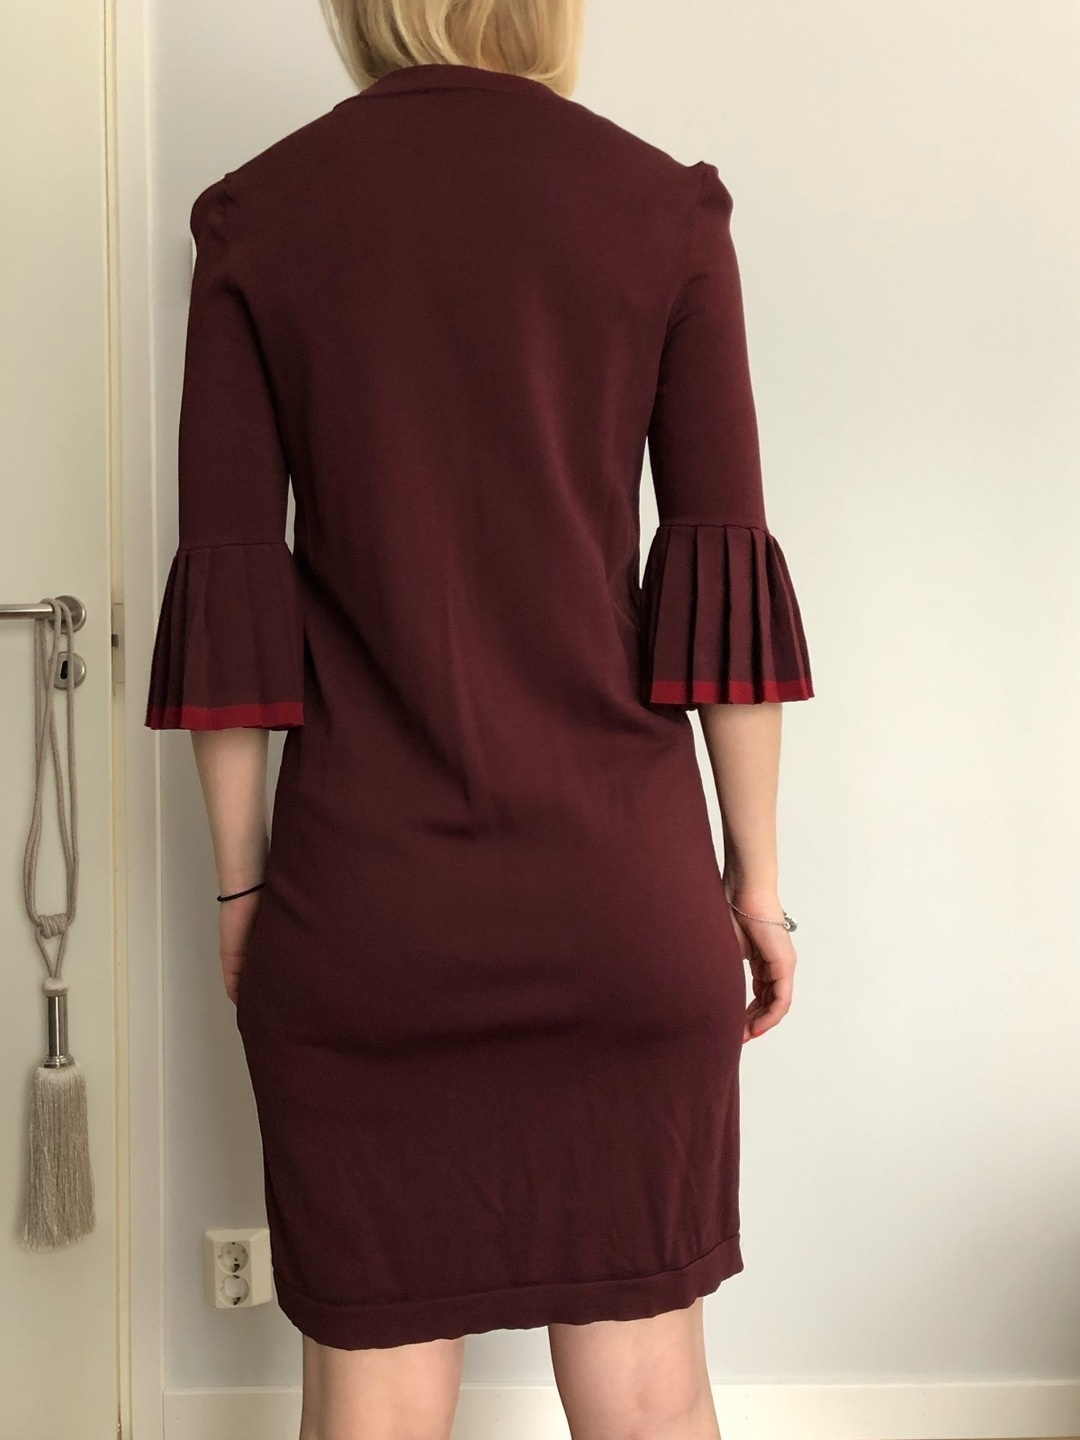 Women's dresses - COS photo 2